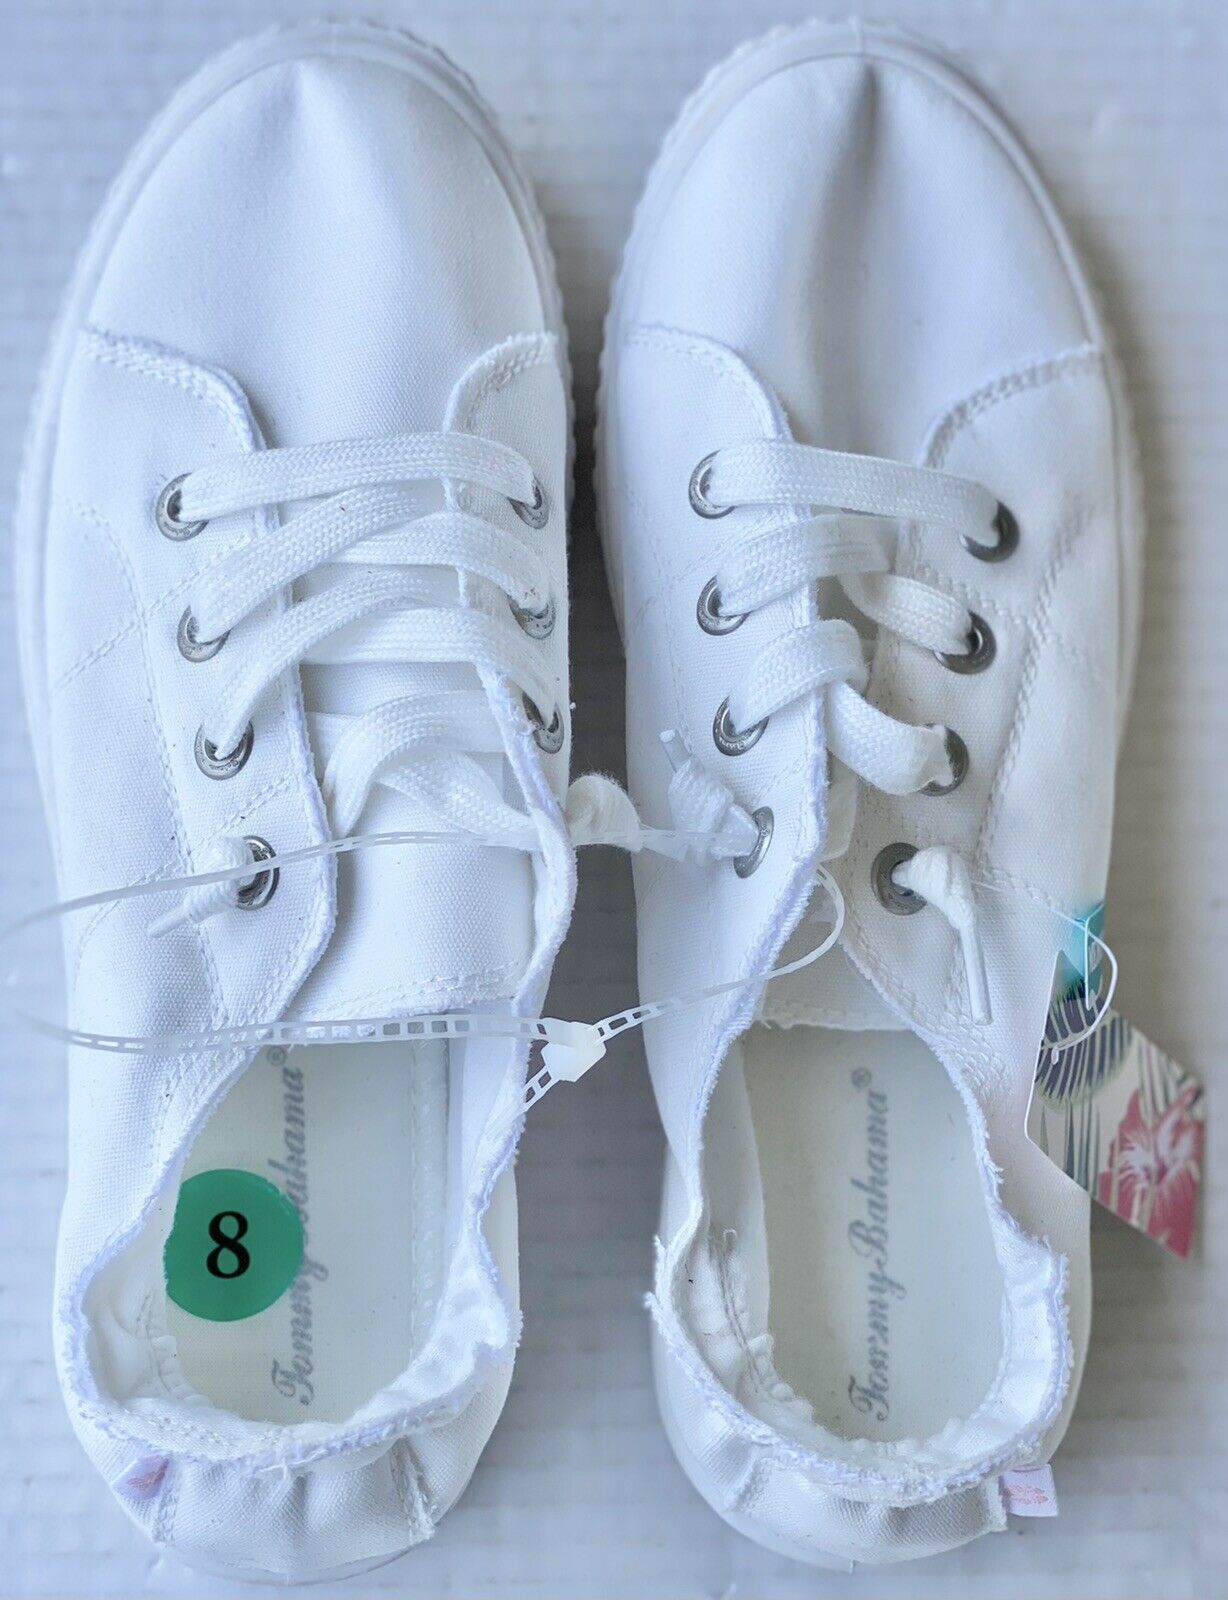 Tommy Bahama Women's Flat Shoes Size 8 White Memory Foam NWOB Very Comfy Shoes!